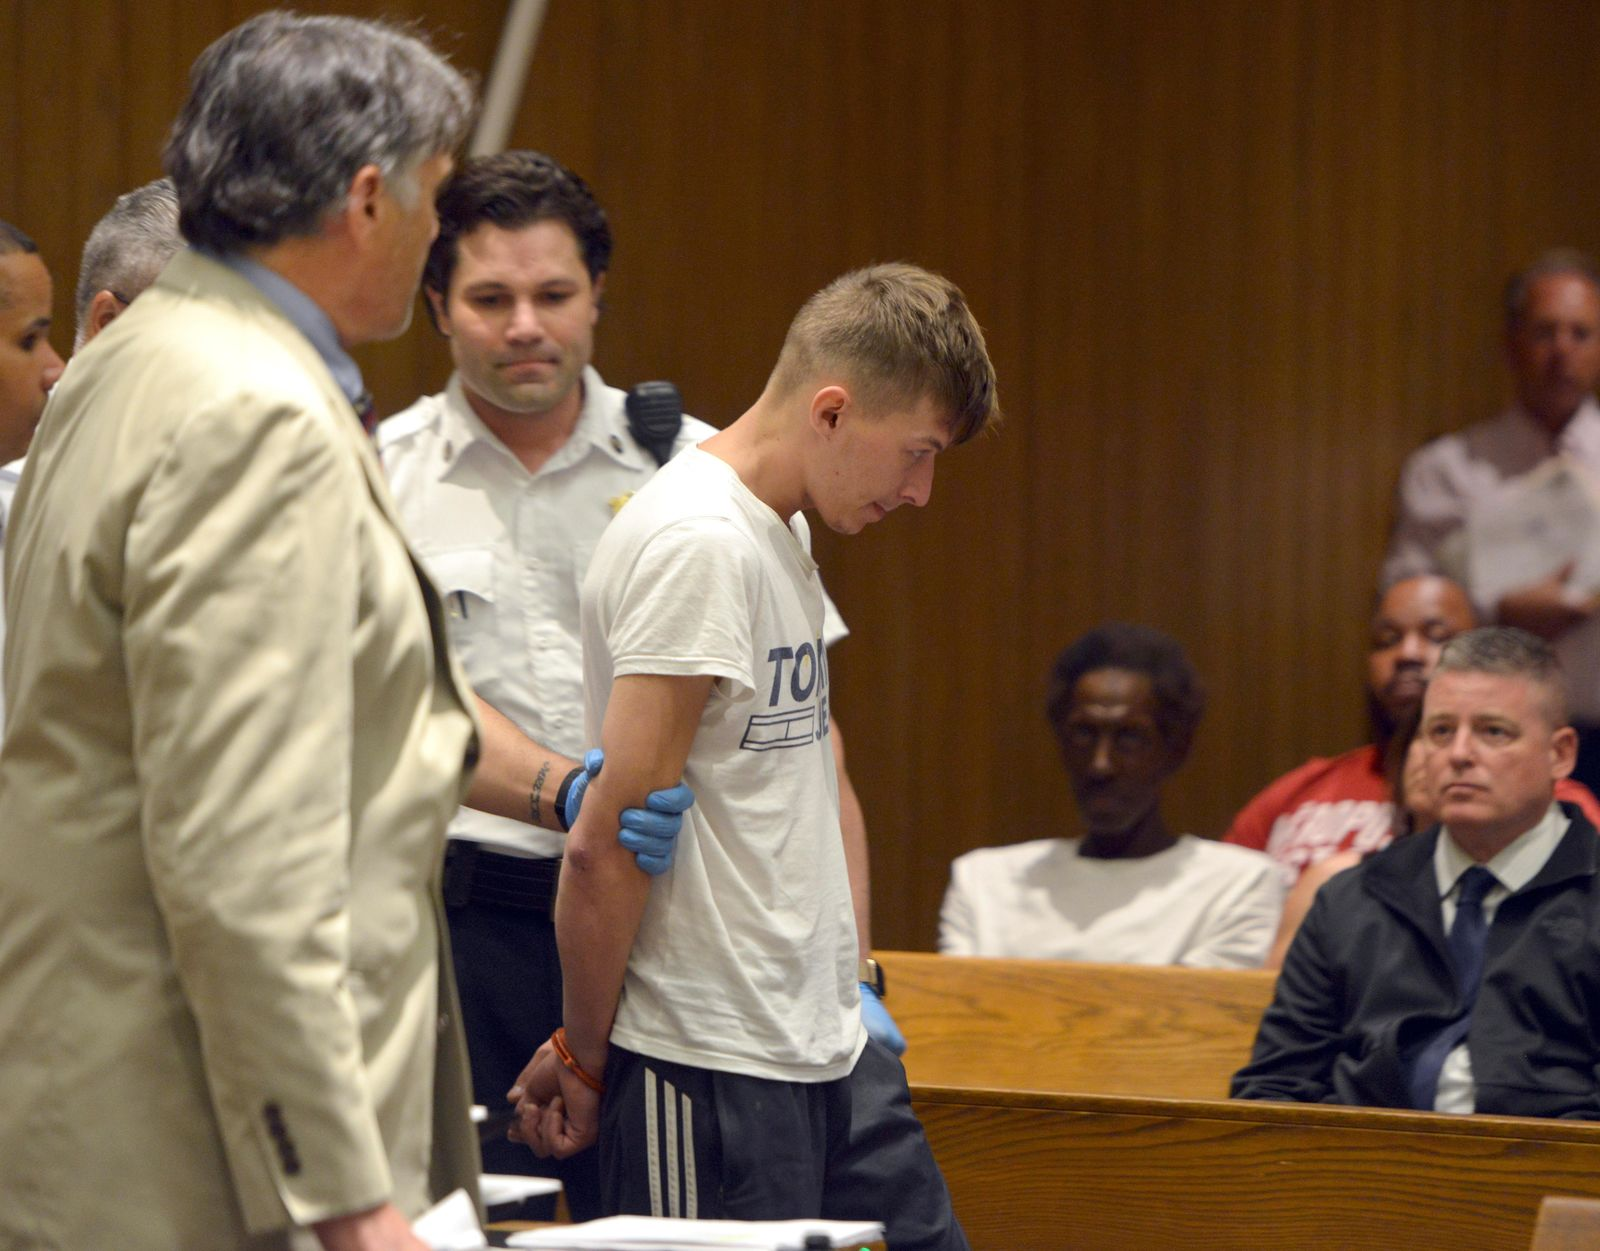 Volodymyr Zhukovskyy, 23, of West Springfield, stands during his arraignment in Springfield District Court, Monday, June 24, 2019, in Springfield, Mass. Zhukovskyy, the driver of a truck in a fiery collision on a rural New Hampshire highway that killed seven motorcyclists, was charged Monday with seven counts of negligent homicide. (Don Treeger/The Republican via AP, Pool)